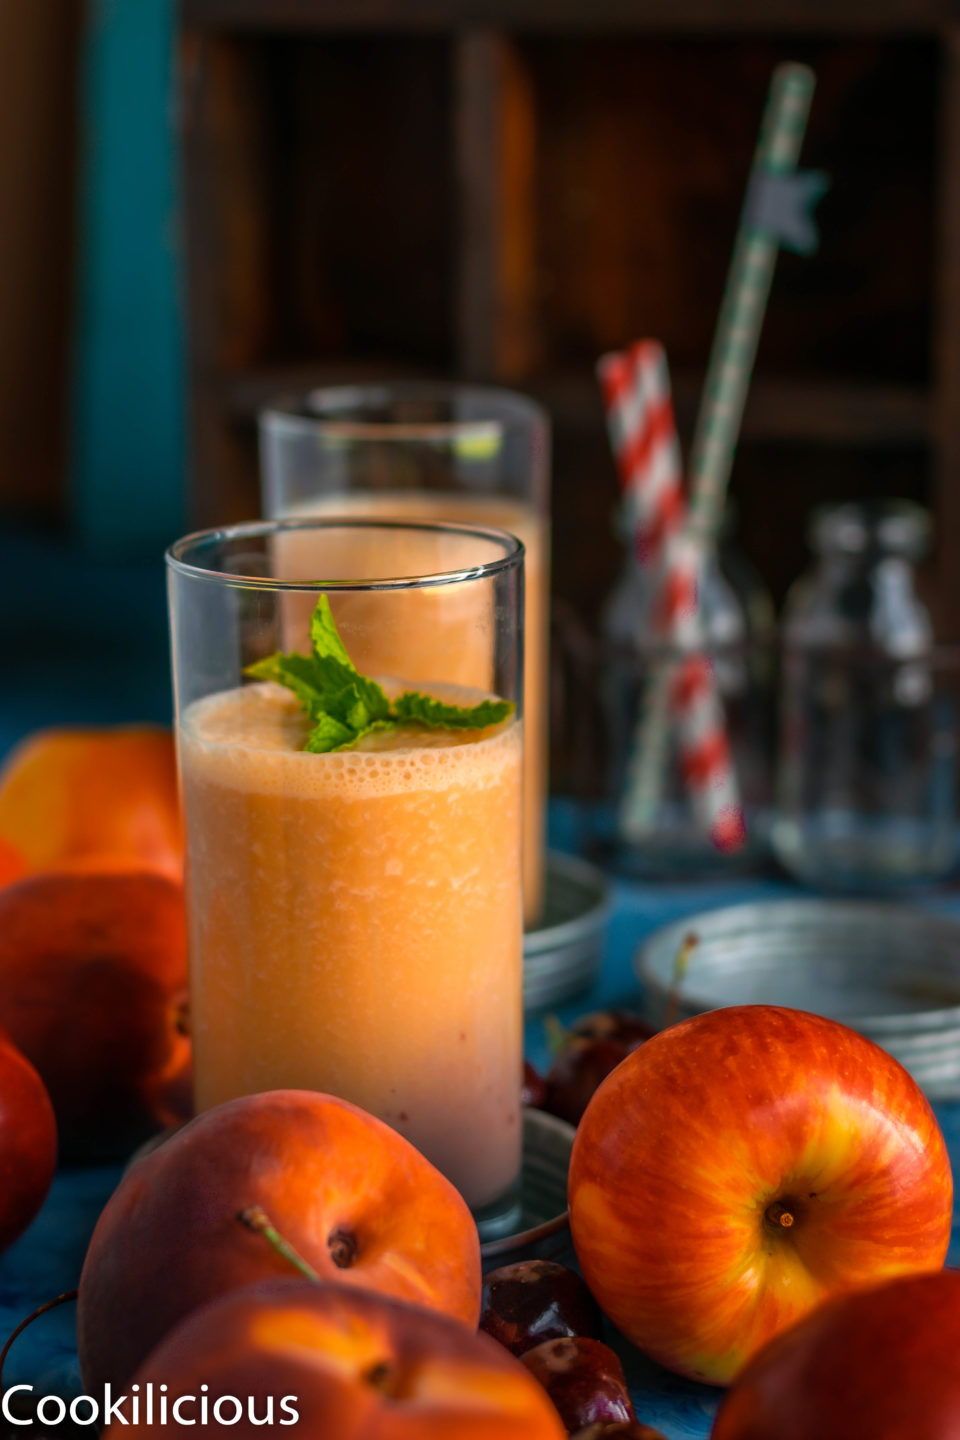 Peach & Raspberry Creamsicle Vegan Smoothie with apples and peaches in the front